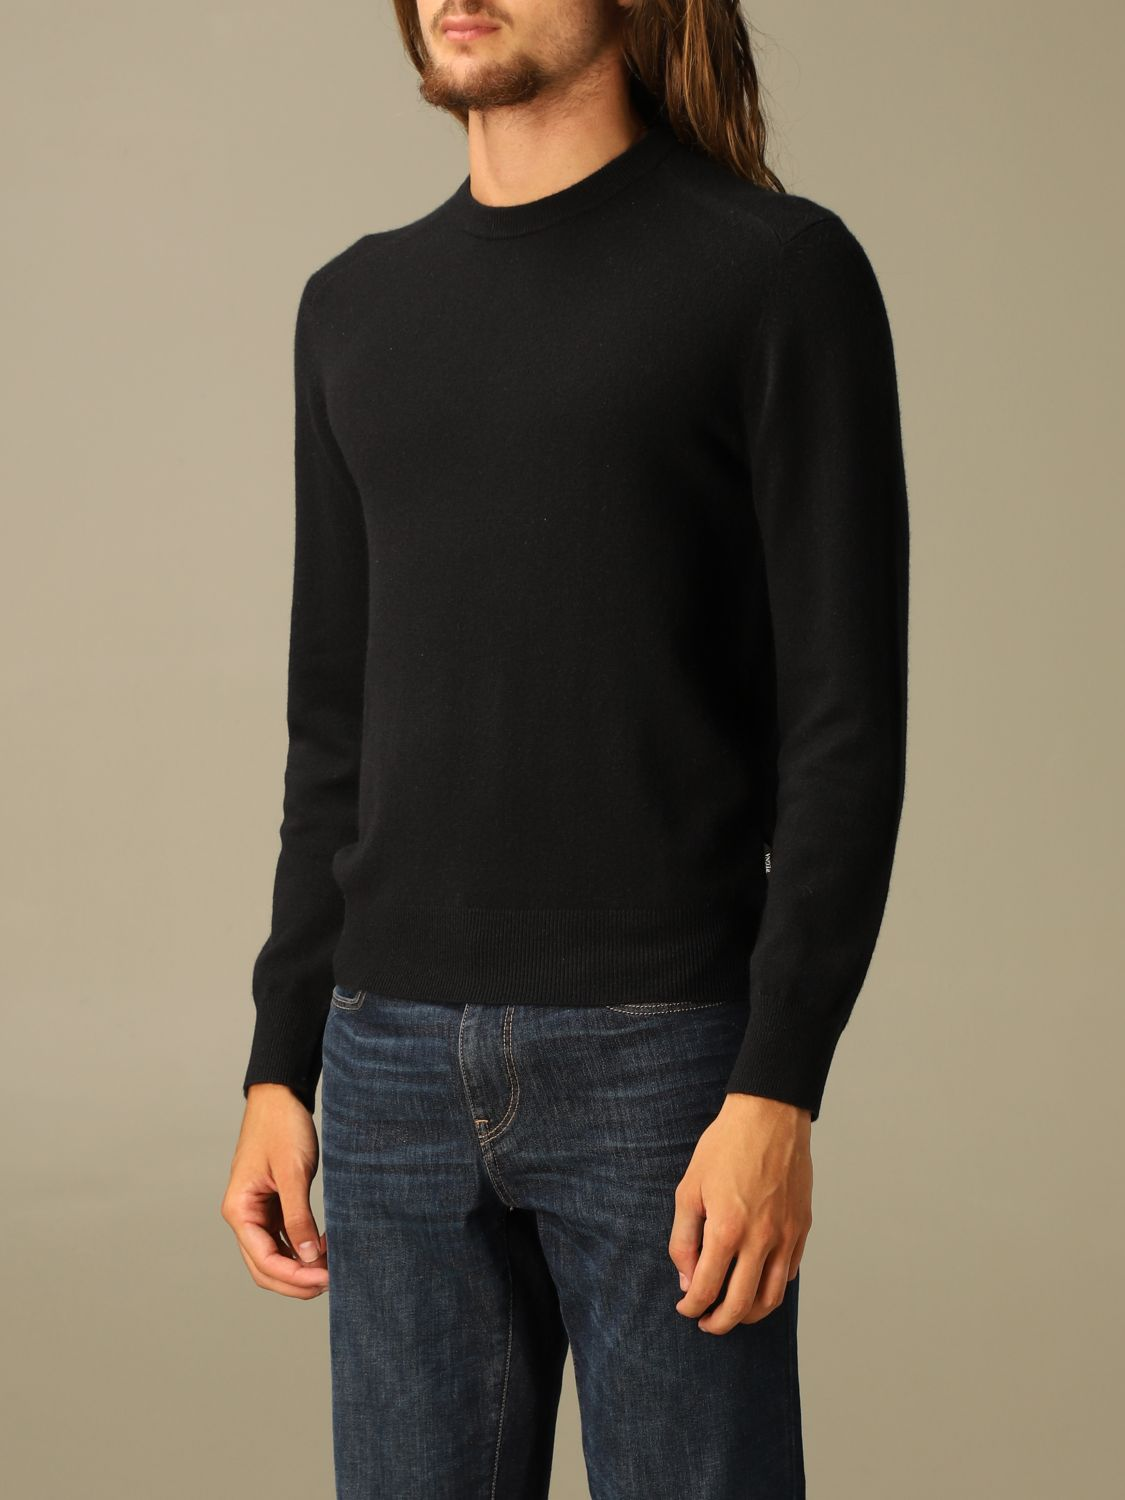 Sweater Z Zegna: Z Zegna cashmere sweater with long sleeves black 3